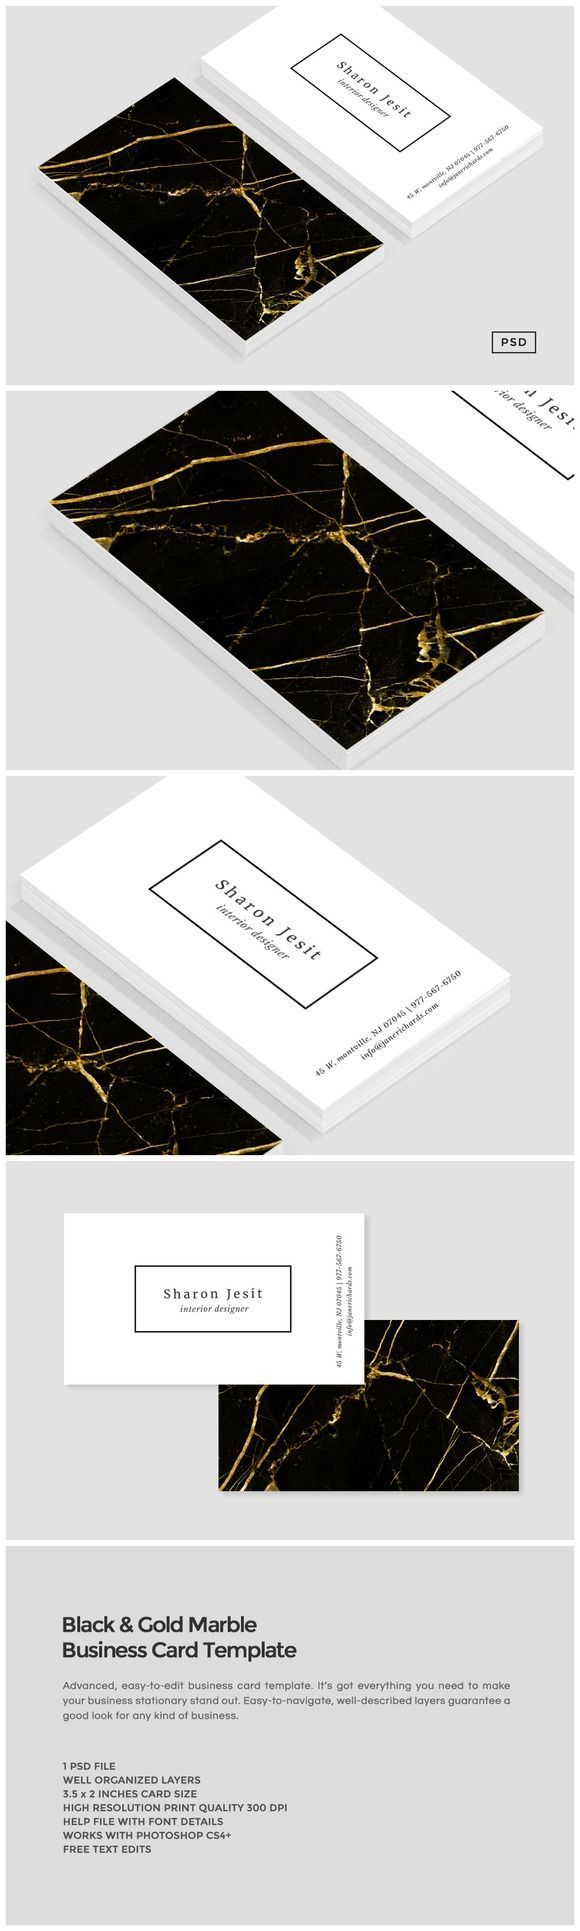 189 best Creative business cards images on Pinterest | Cactus ...